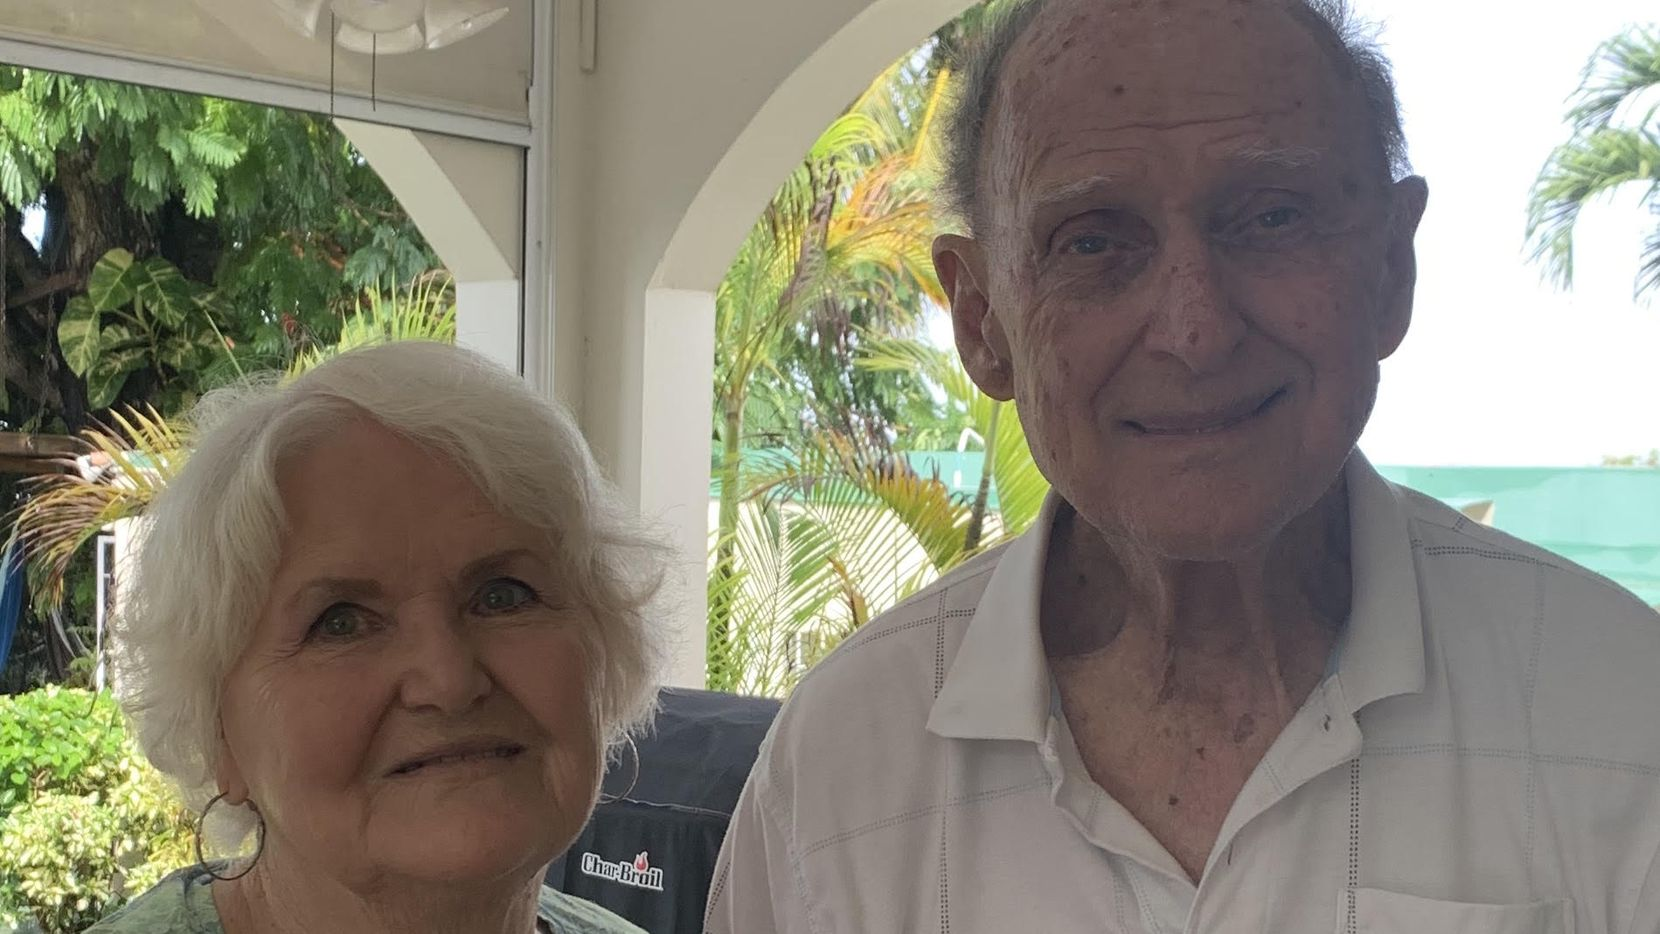 Bonnie and Bill Jennings, of Arlington, Texas, traveled to Barbados on American Airlines in early March to visit their daughter and son-in-law, who live there year round. But they became stranded  after the coronavirus pandemic caused Barbados to shut down its borders. They have been waiting ever since for a return flight to Dallas, while they continue to stay at their daughter's home as shown here on Sept. 29, 2020. They're now scheduled for a return flight on Monday, Oct. 12, 2020.